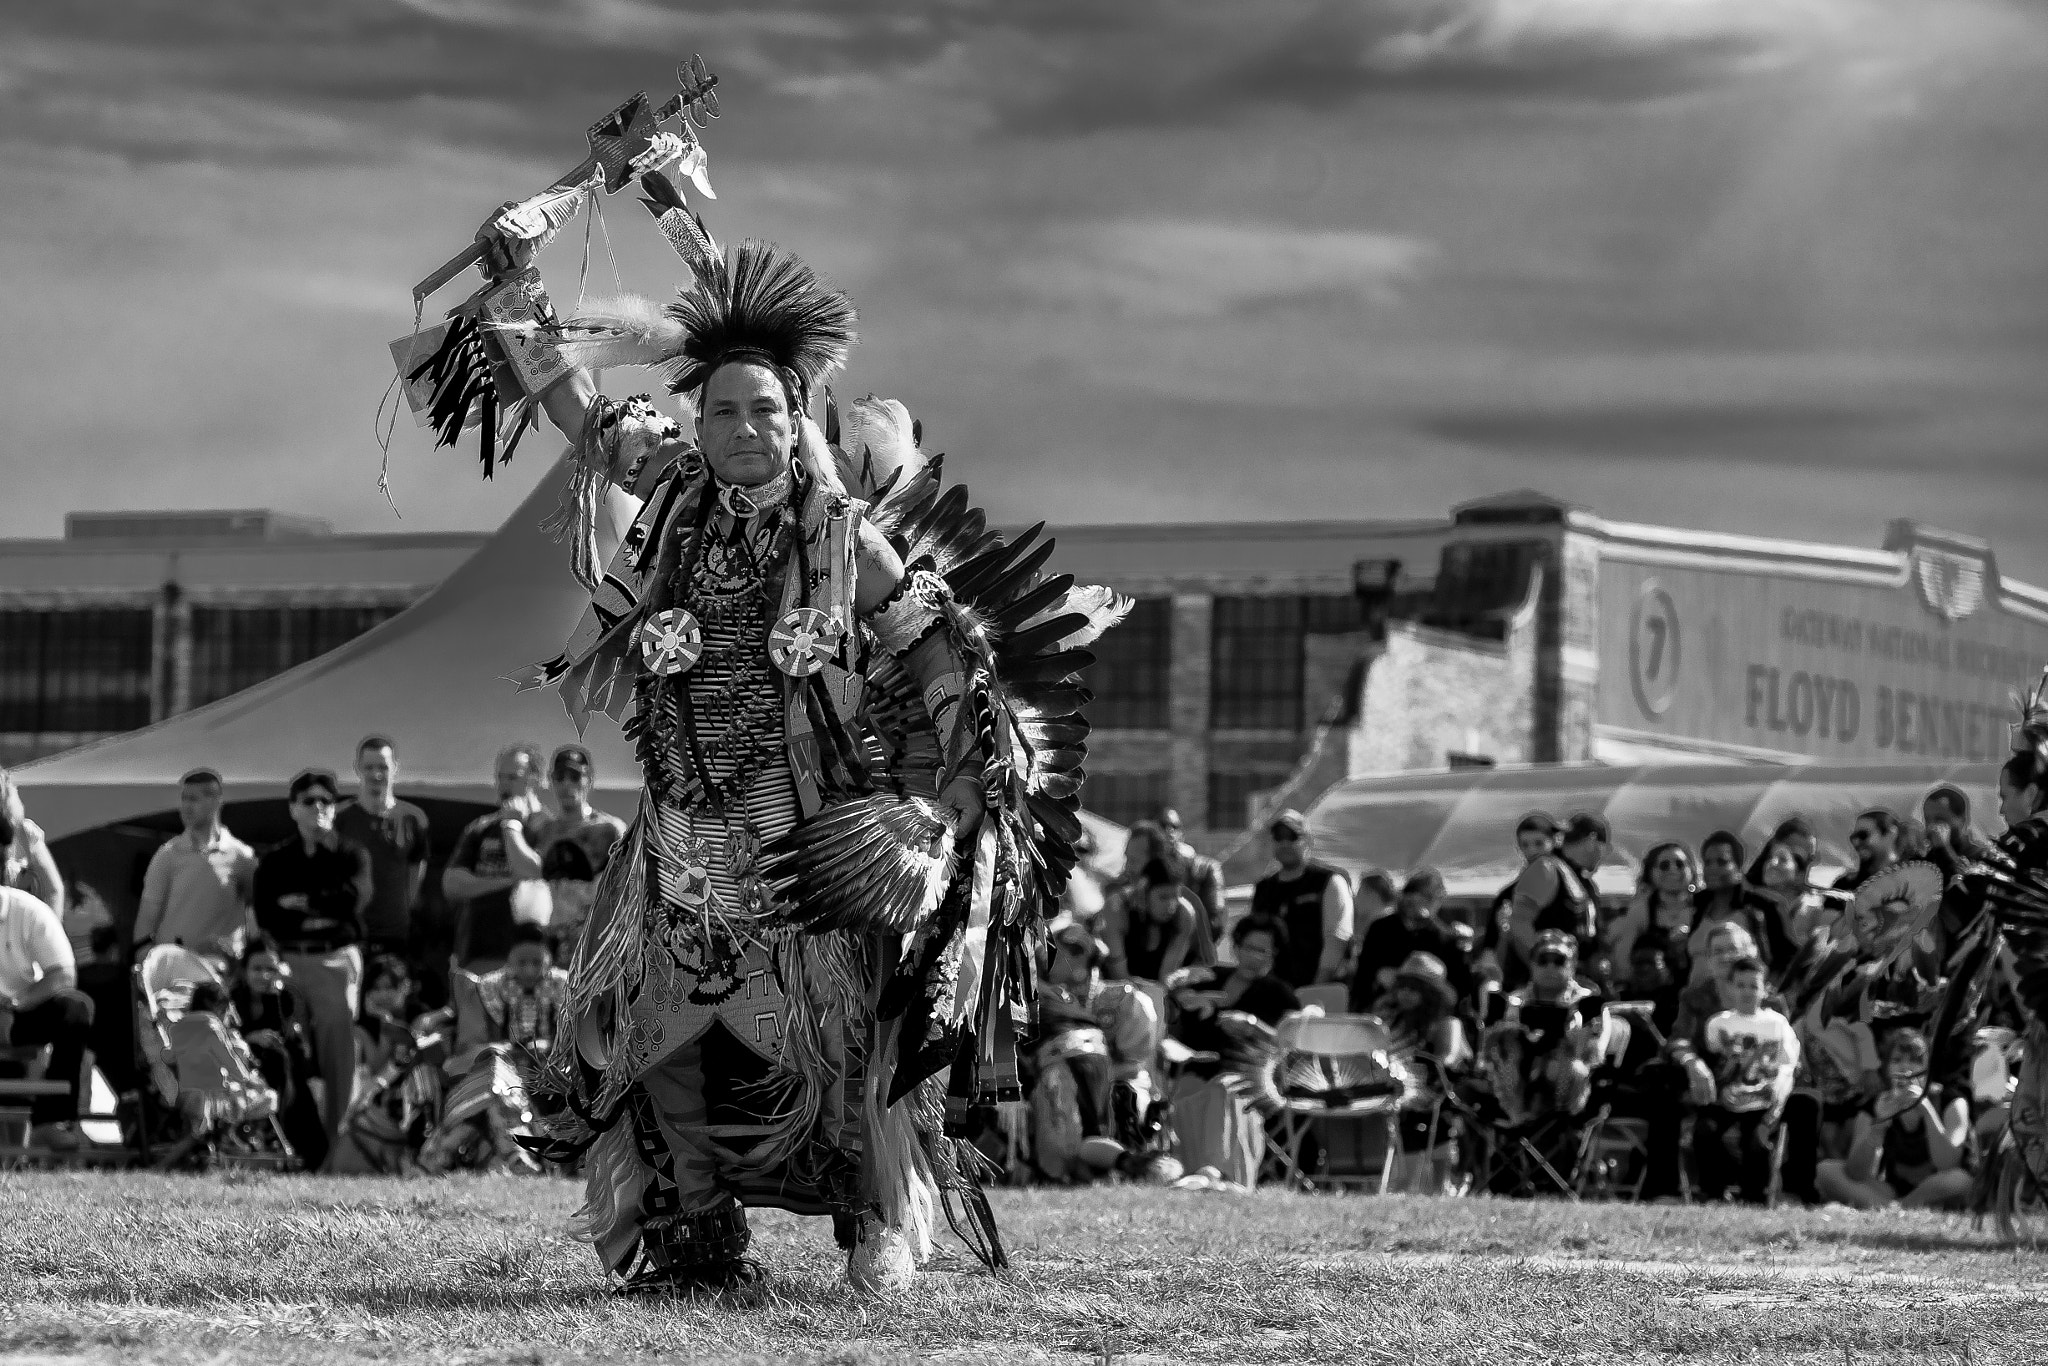 Photograph Warrior by Mark OneWolf on 500px